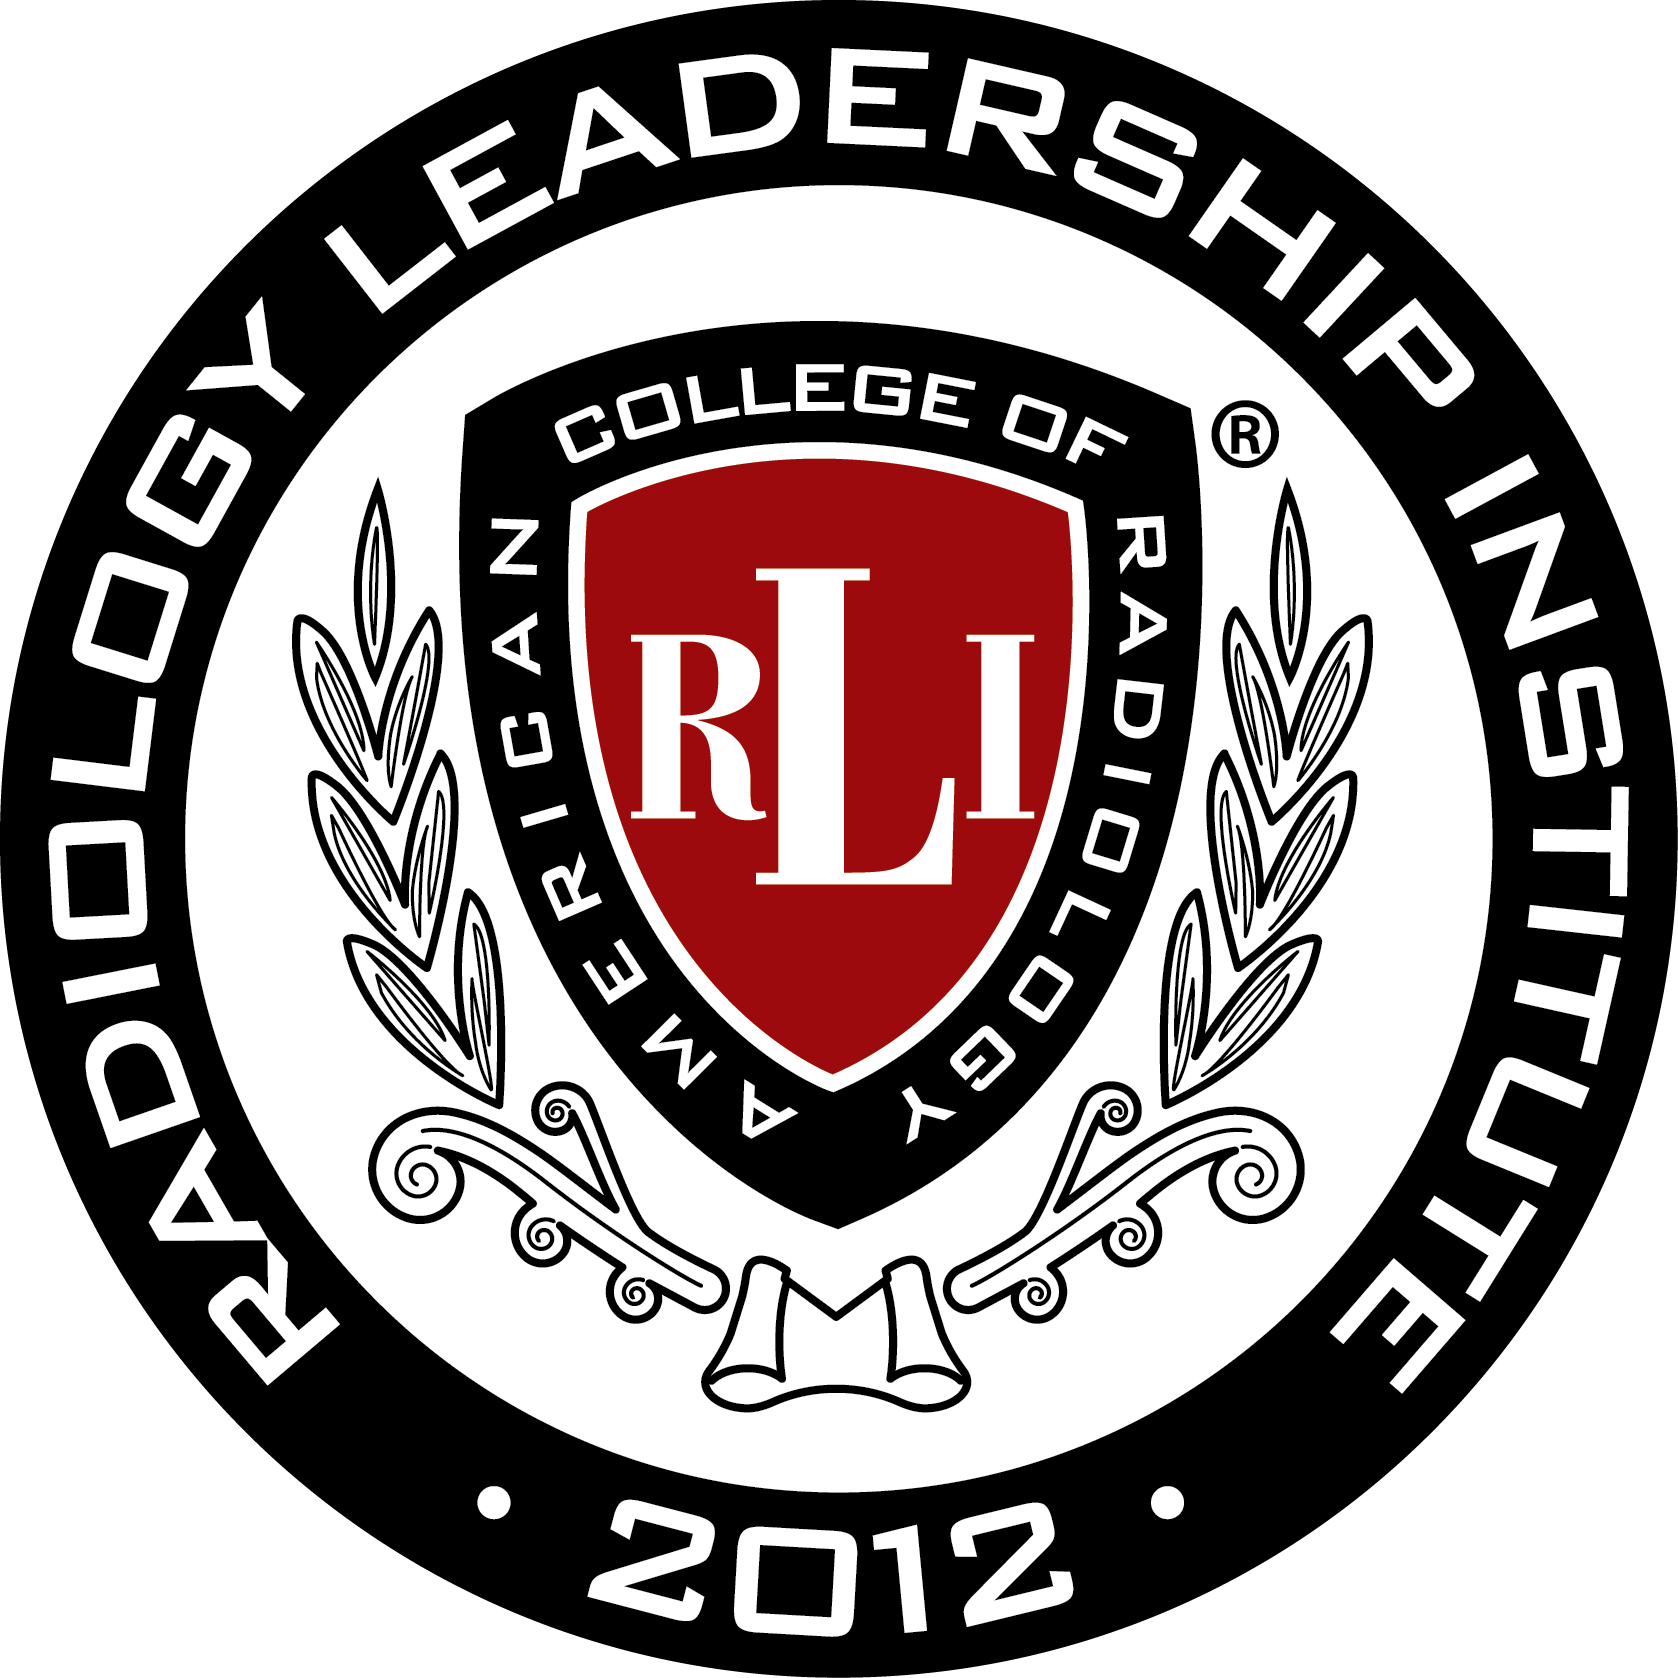 Practice management quality informatics american college of radiology leadership institute buycottarizona Image collections